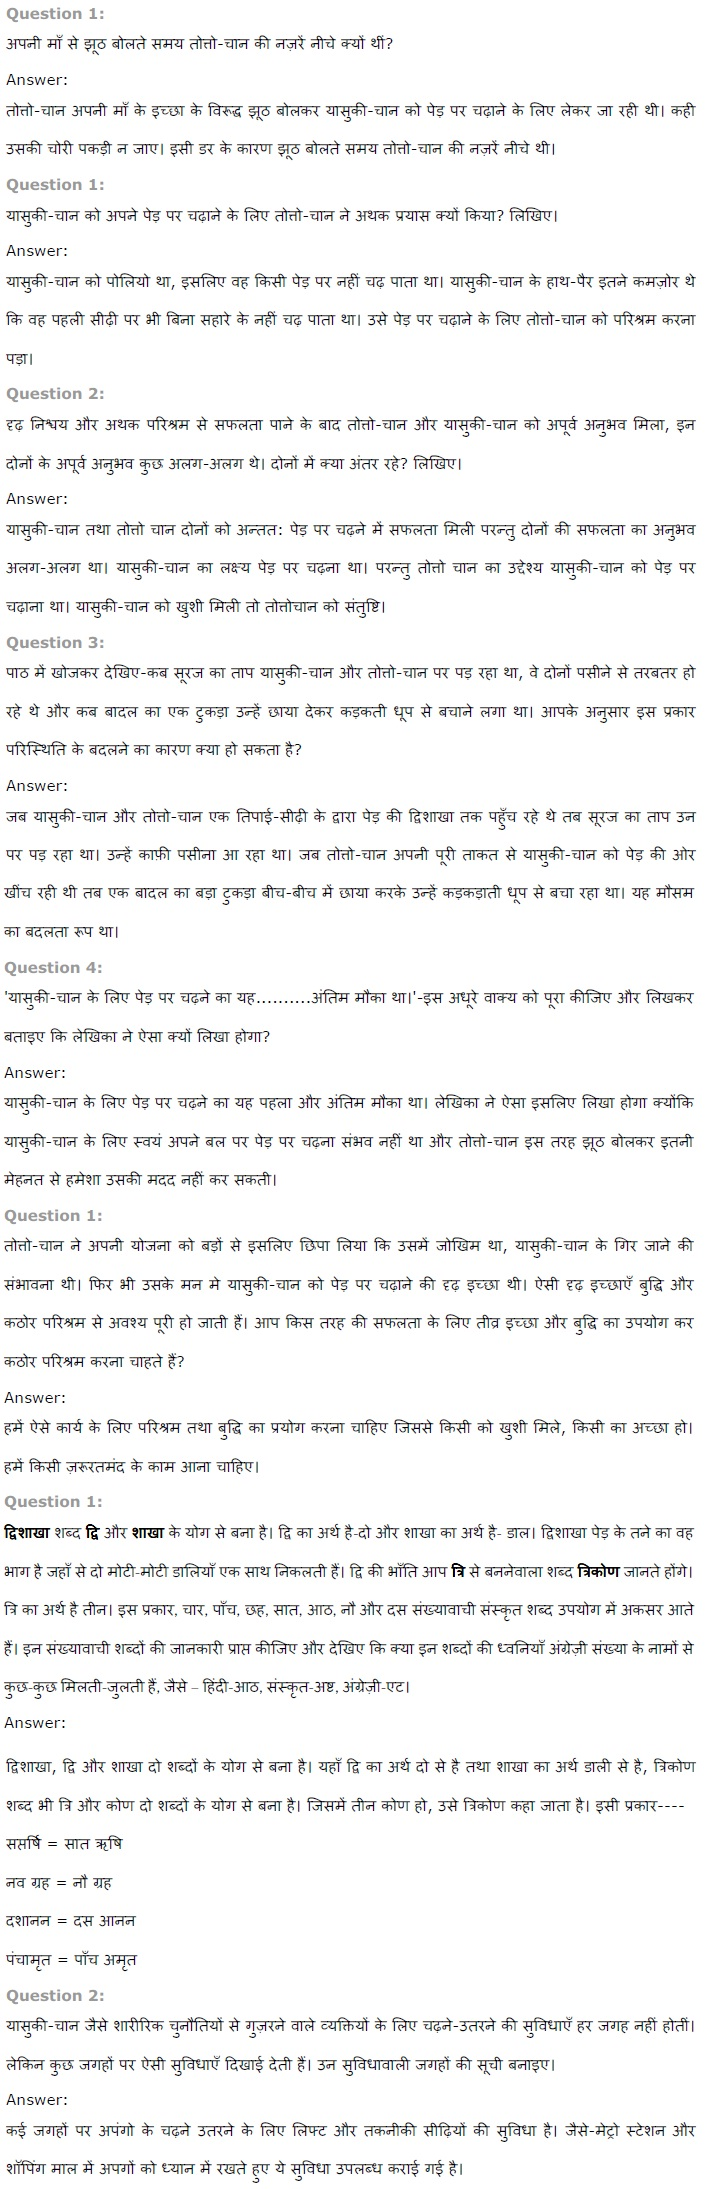 NCERT Solutions for Class 7th Hindi Chapter 10 अपूर्व अनुभव PDF Download